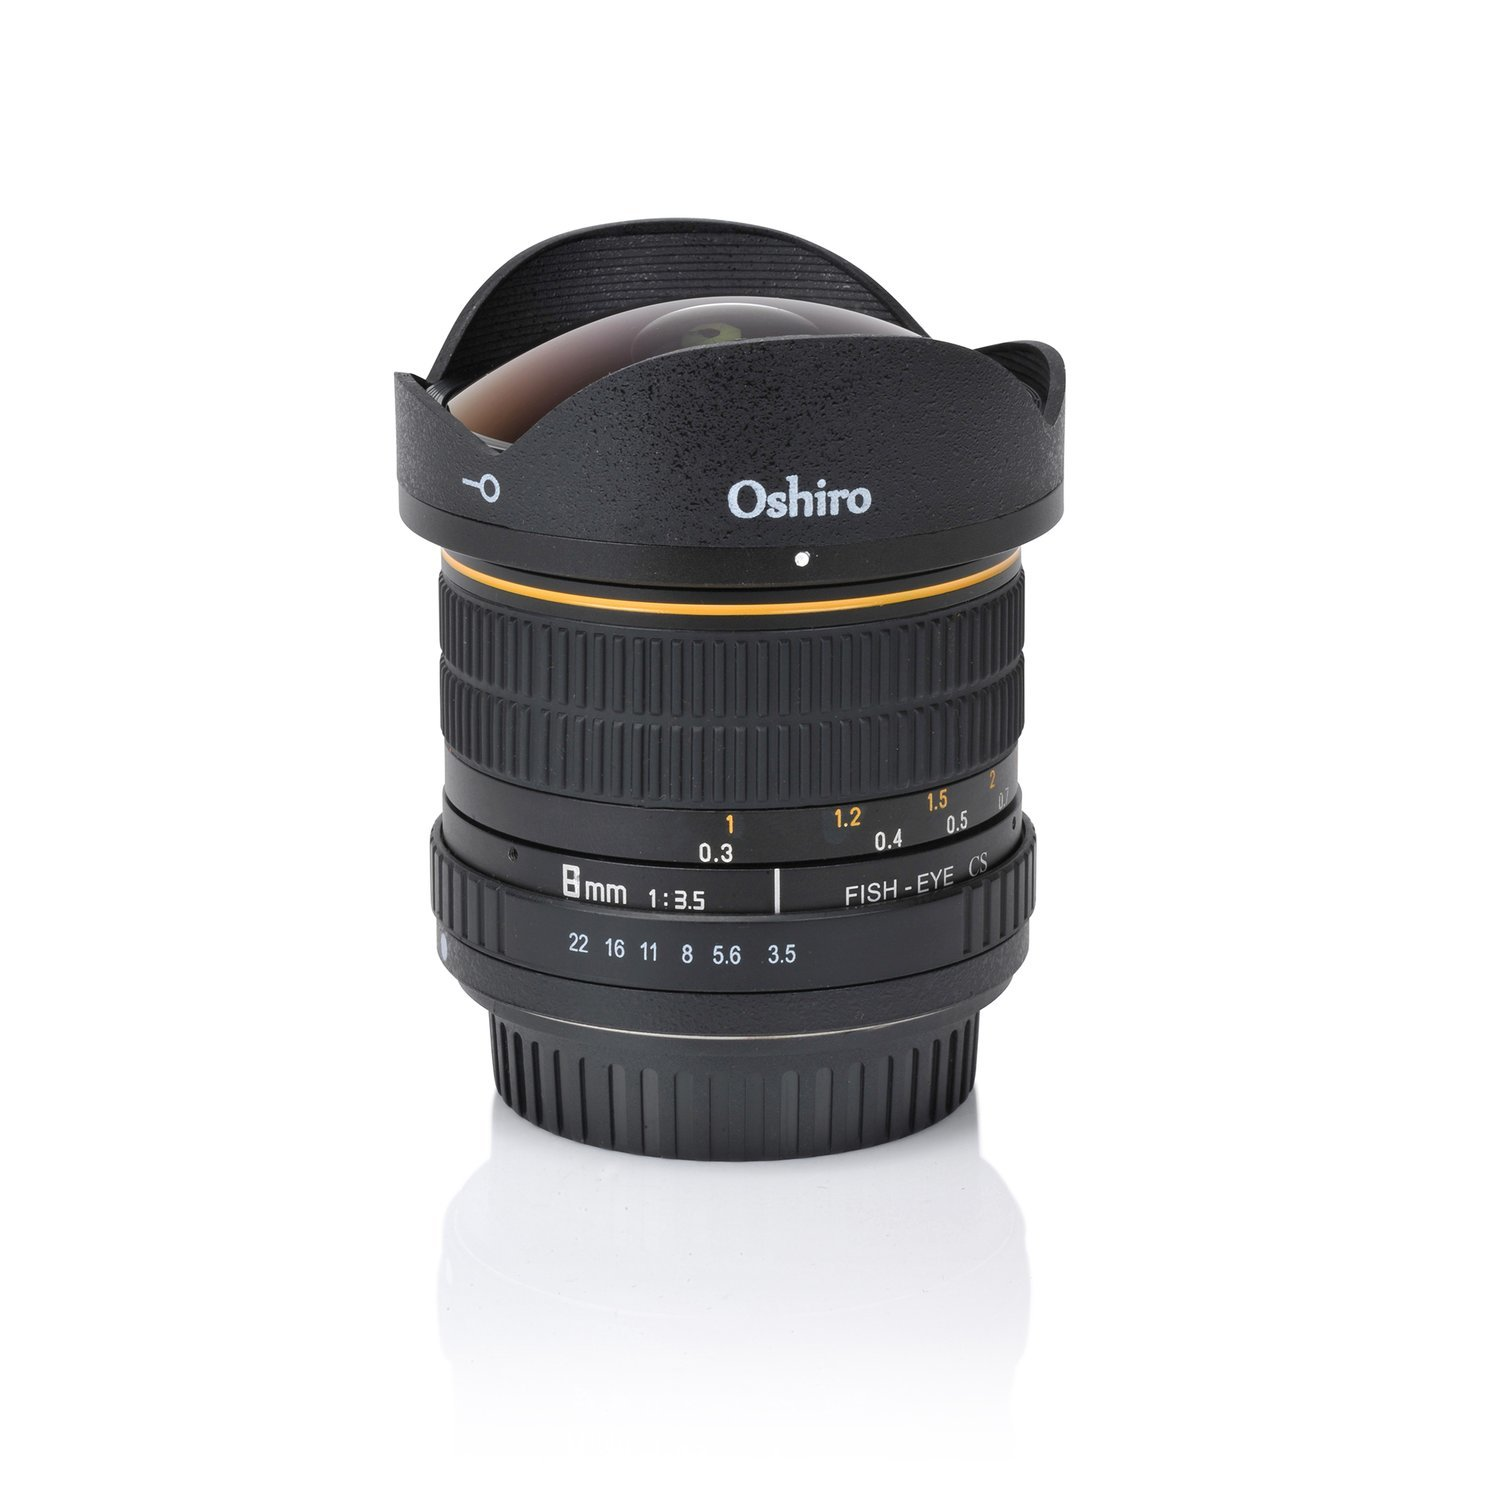 Oshiro 8mm Fisheye CS Lens F3.5 - Nikon F-Mount